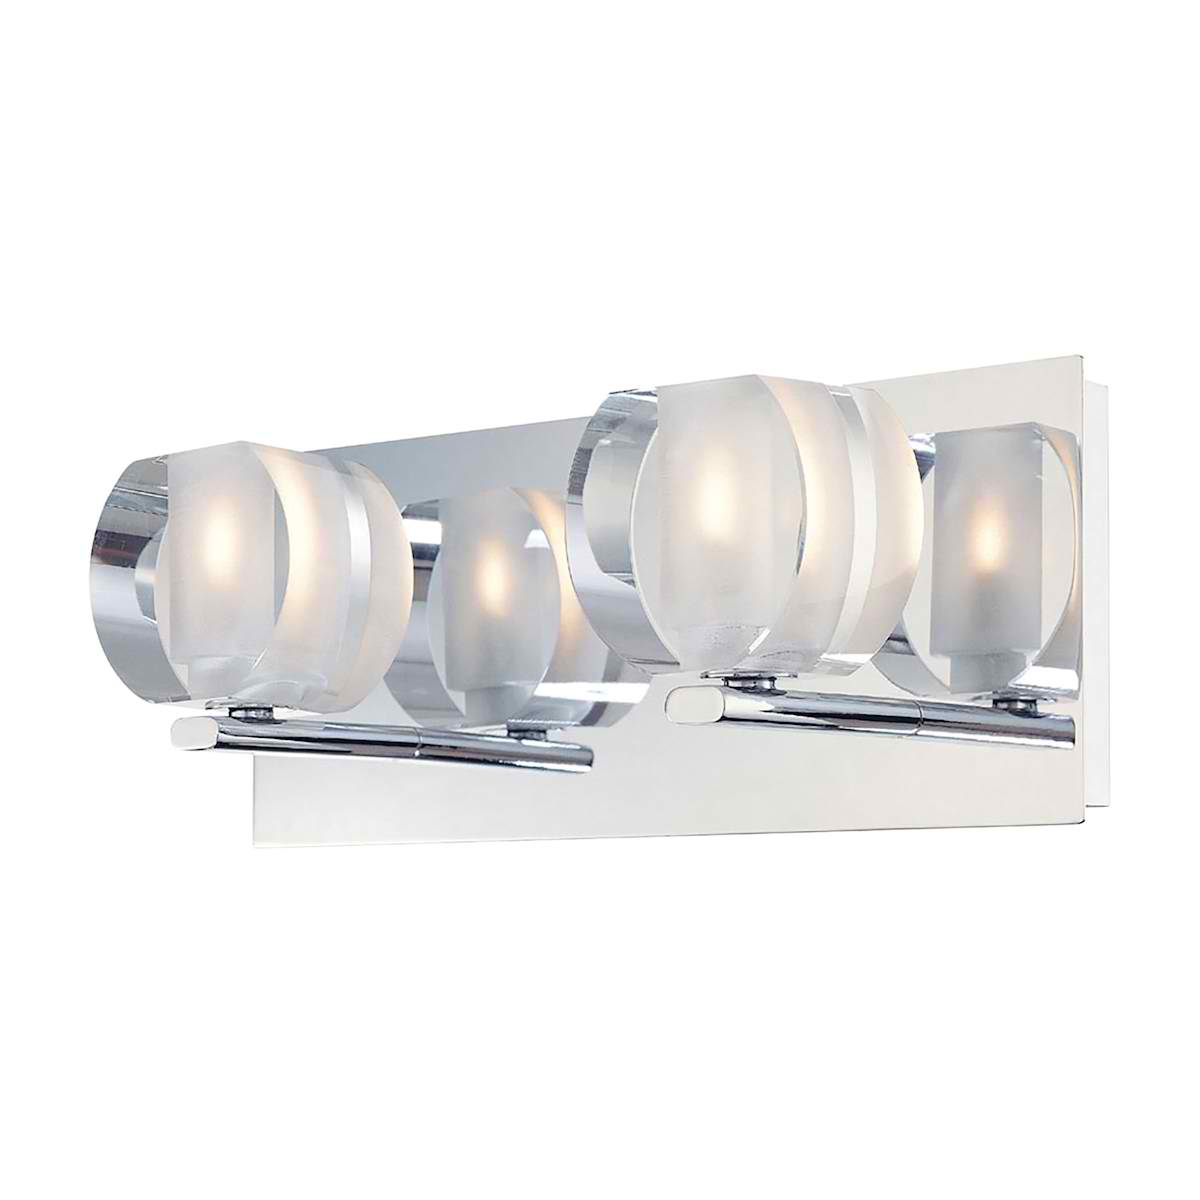 Circo Double Lamp with Rounded Inside Frosted Crystal Glass / Chrome Finish